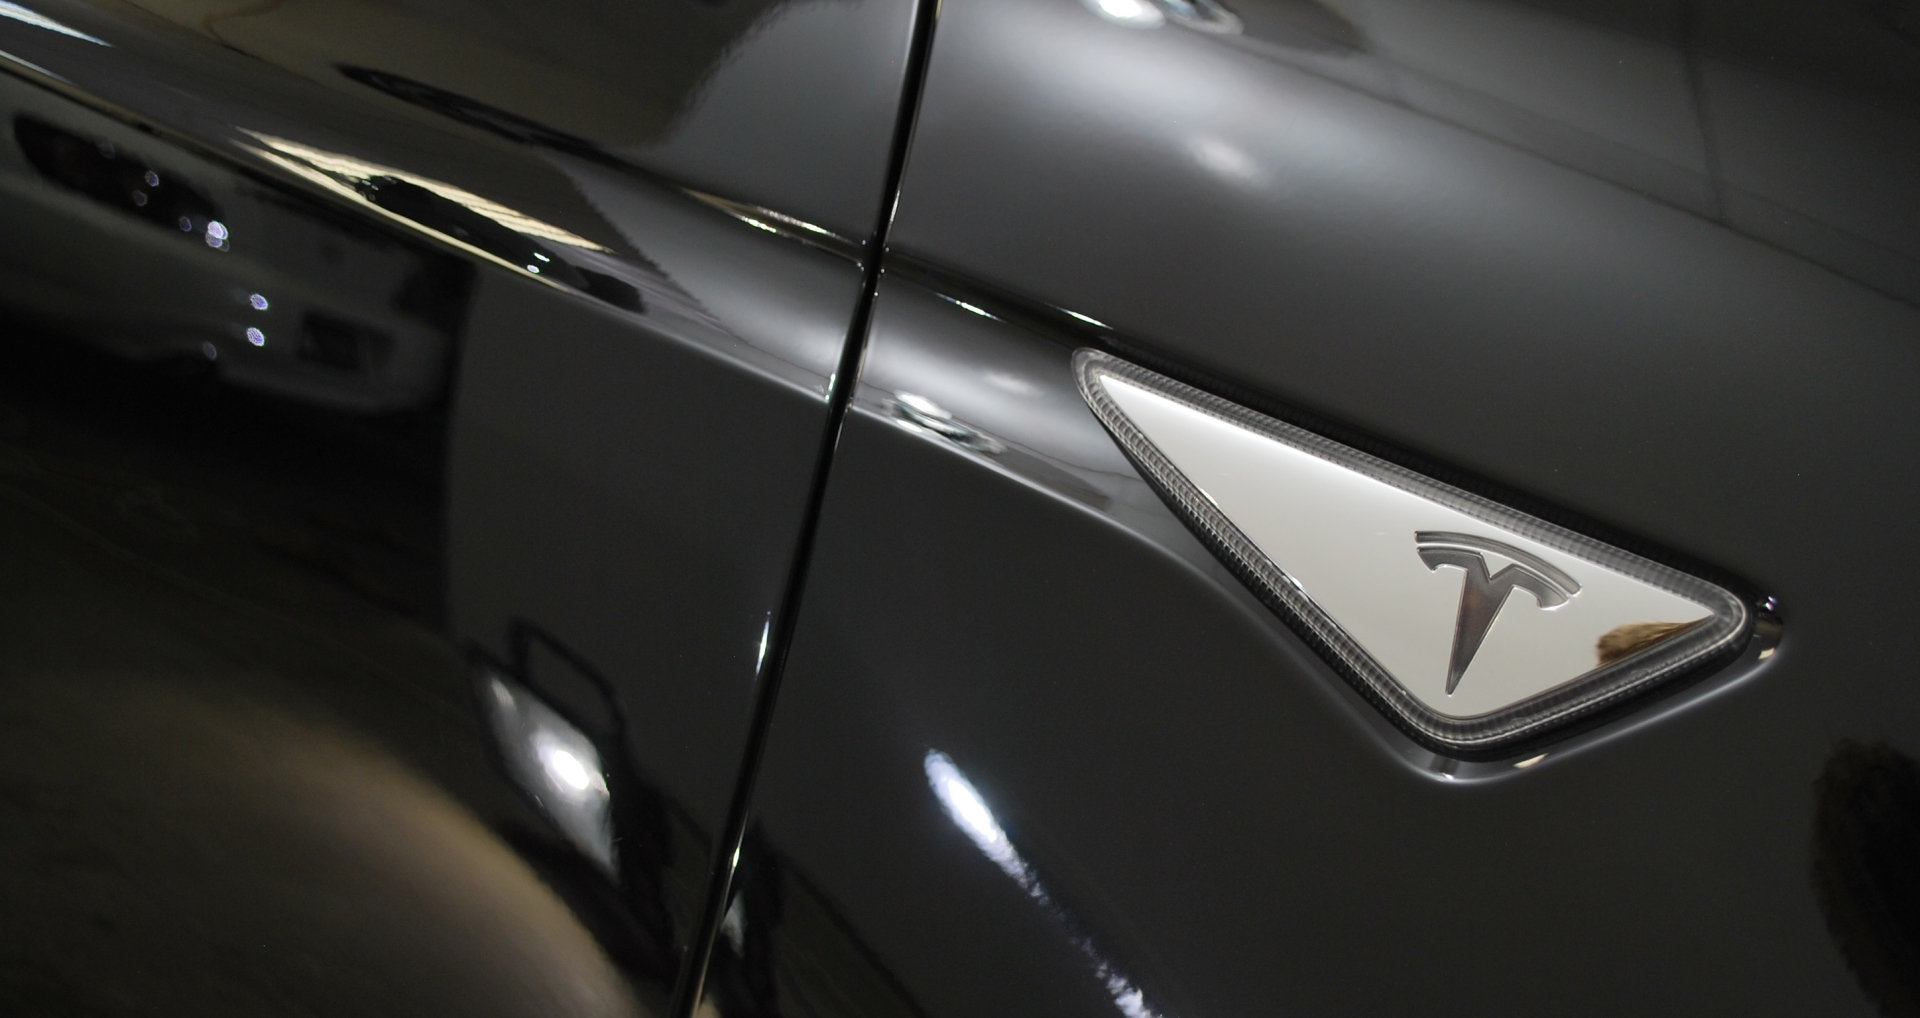 Professional High-Quality Paint Protection Film Installation